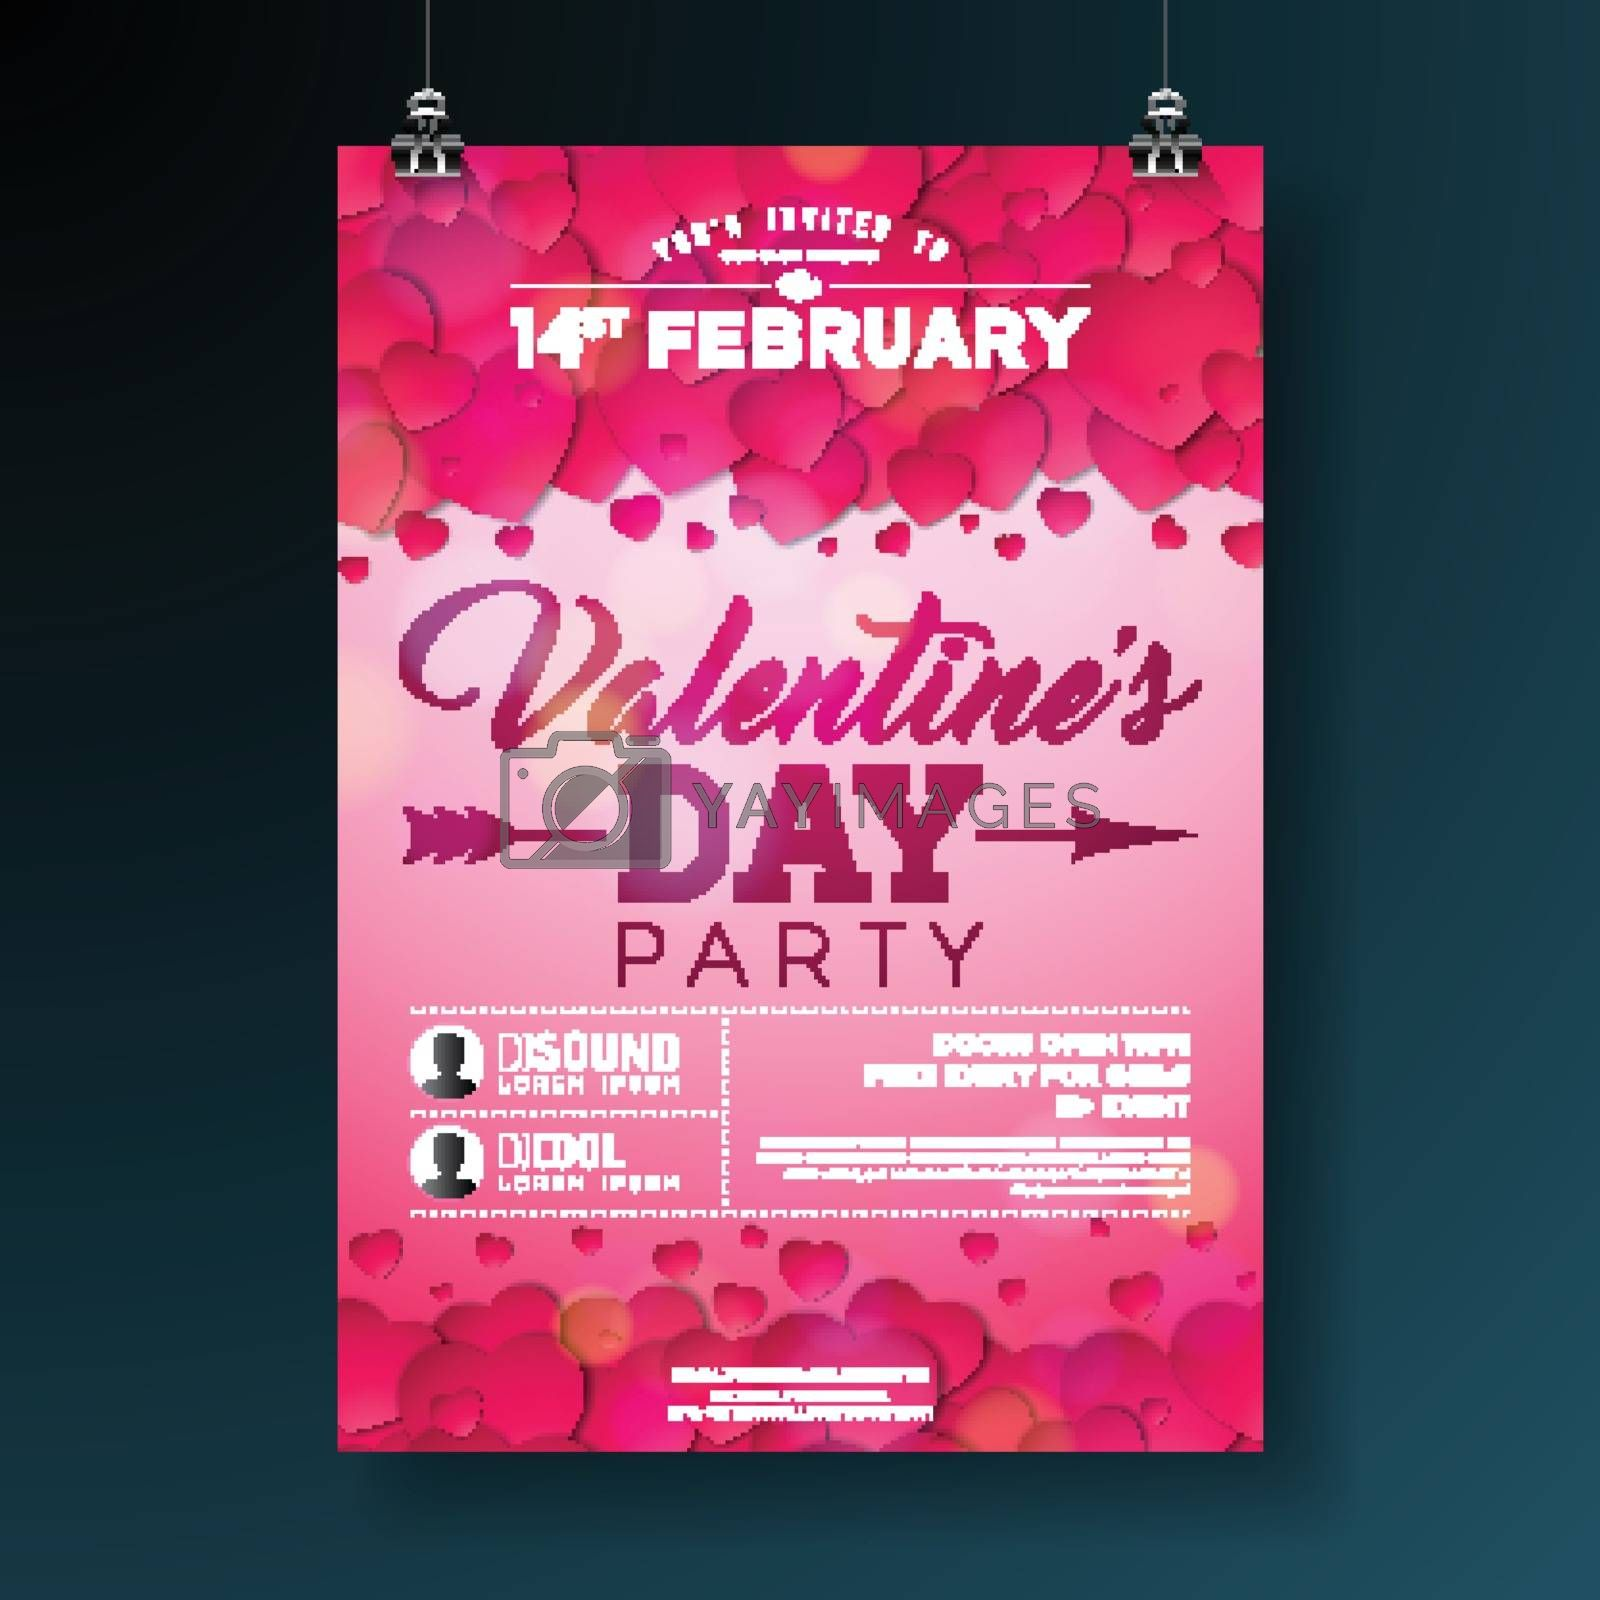 Vector Valentines Day Party Flyer Illustration with Typography and Red Heart on Pink Background. Celebration Poster Template Design for Invitation or Greeting Card. by articular